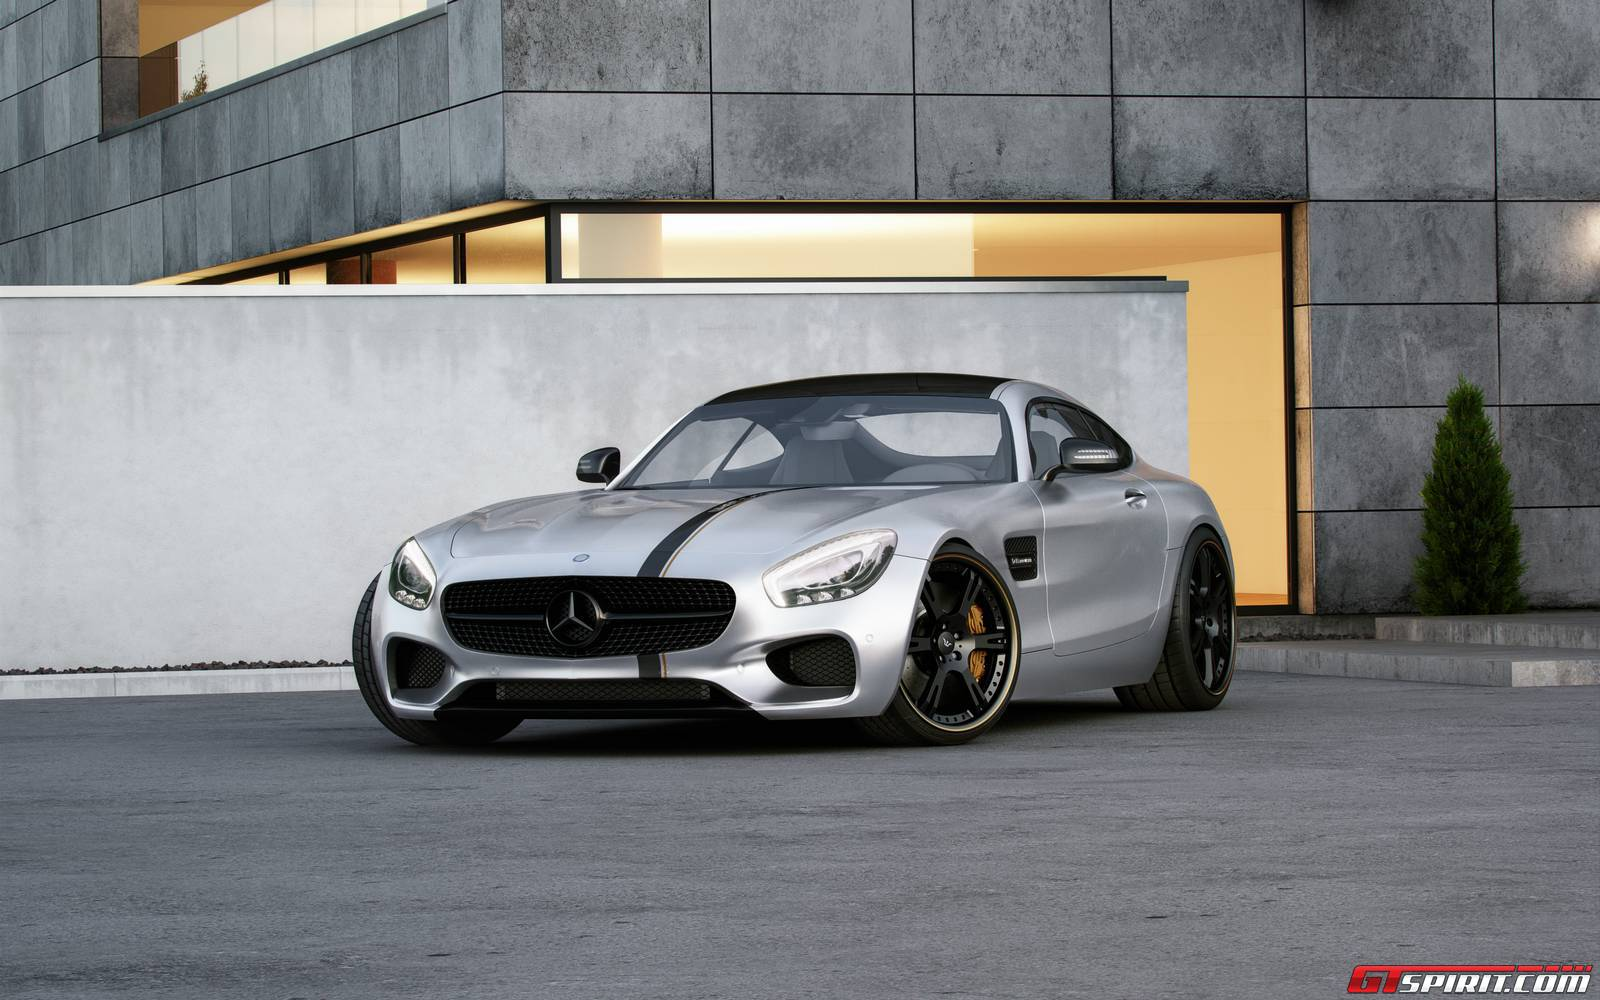 official 600hp mercedes amg gt by wheelsandmore gtspirit. Black Bedroom Furniture Sets. Home Design Ideas